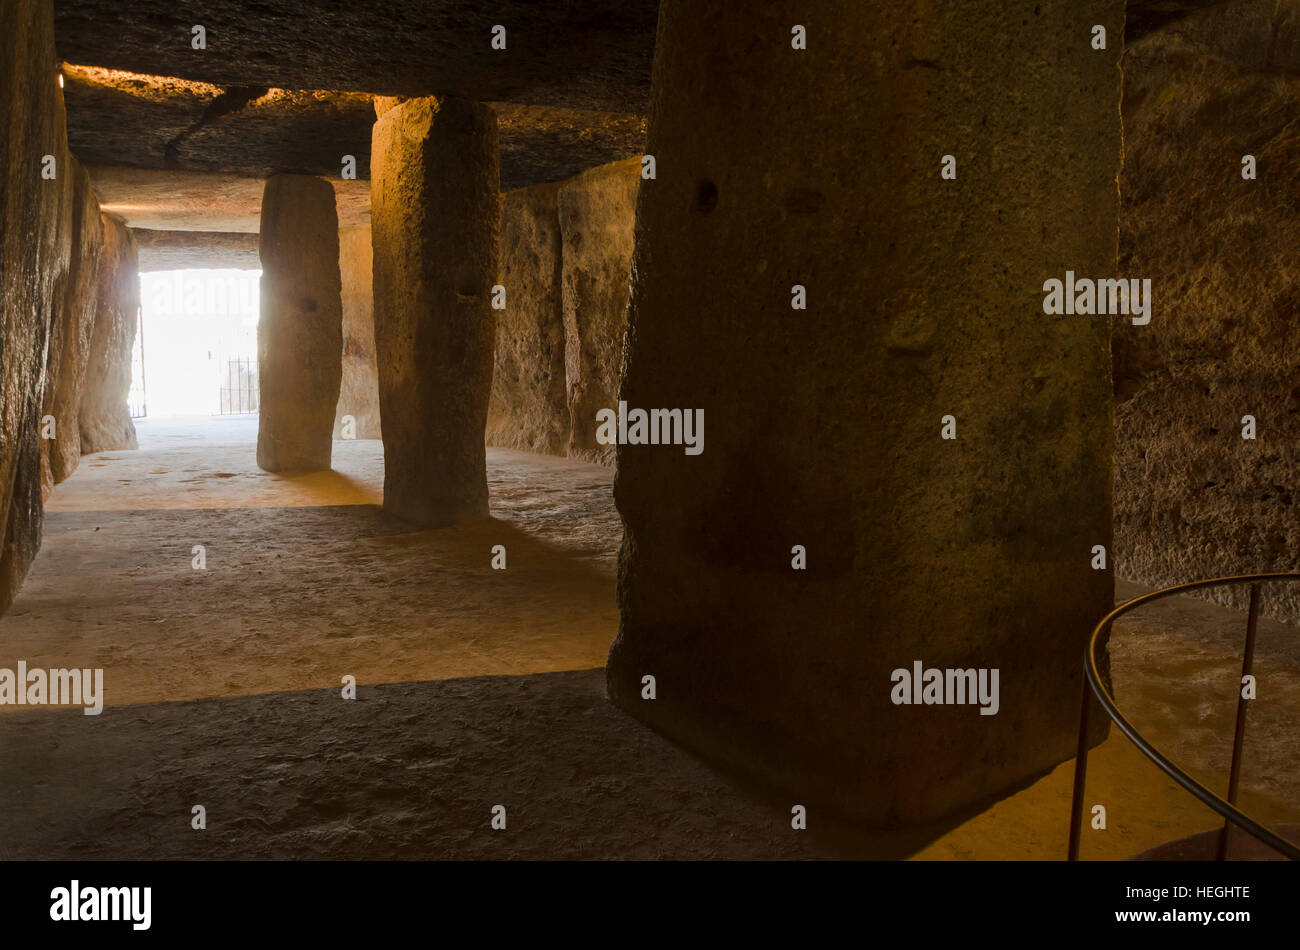 Interior of La Menga Dolmen, dolmens, prehistoric burial chambers, megalithic tombs, Antequera, Andalusia, Spain - Stock Image